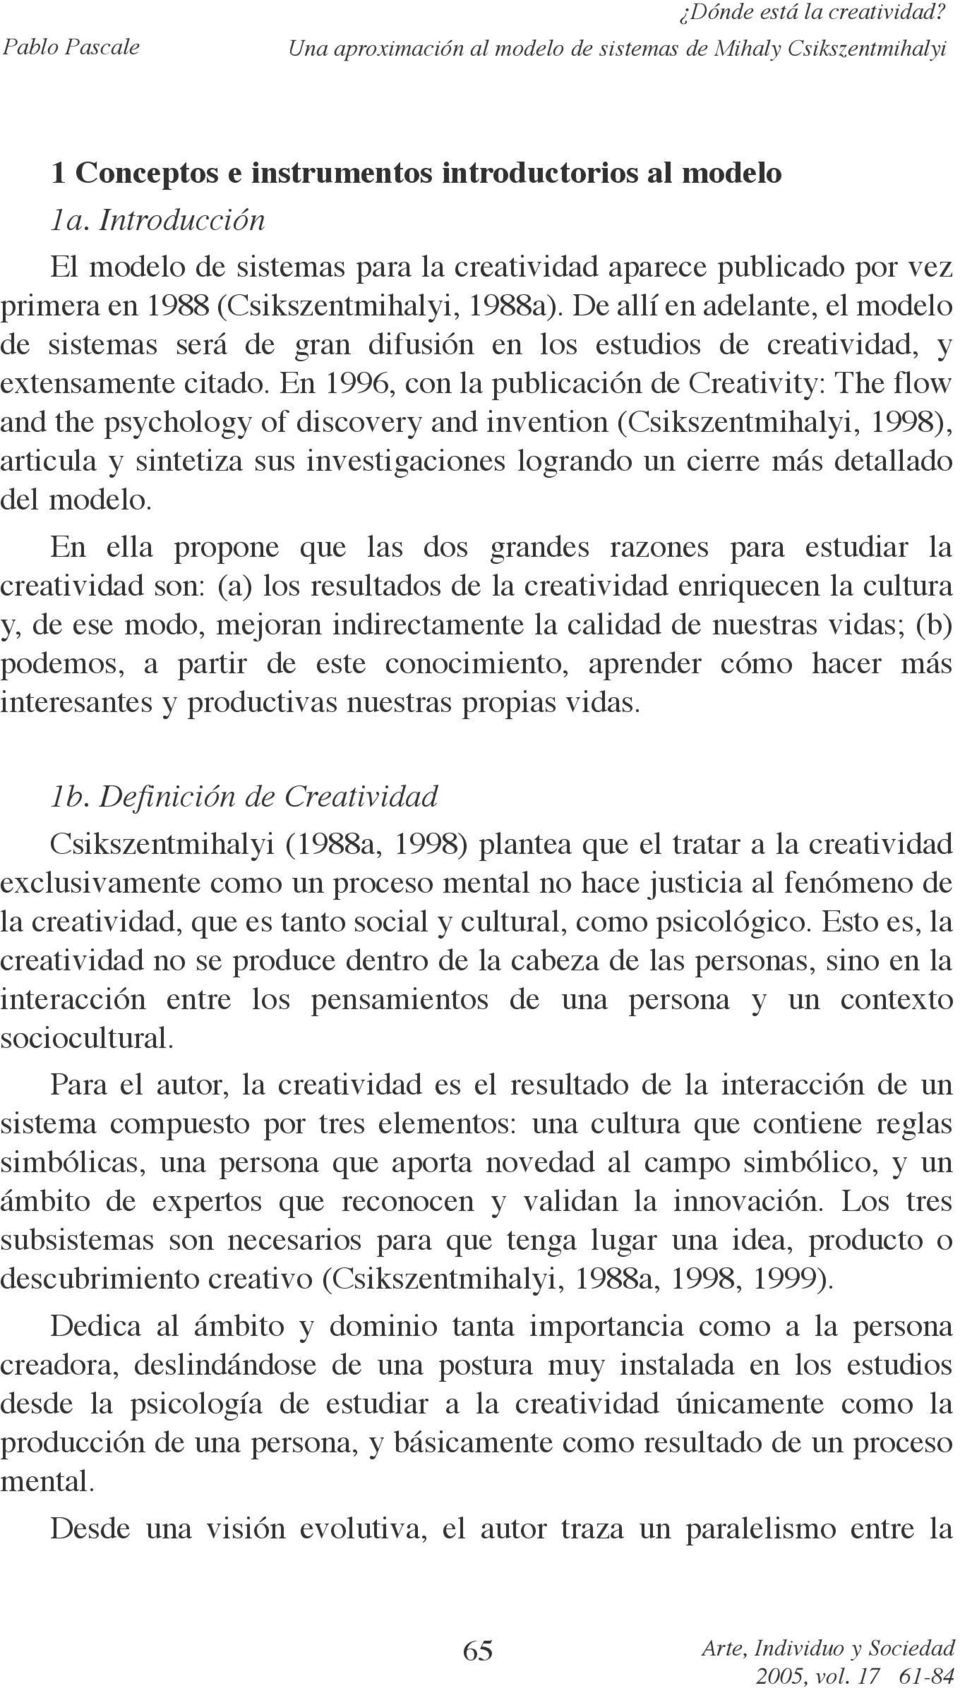 En 1996, con la publicación de Creativity: The flow and the psychology of discovery and invention (Csikszentmihalyi, 1998), articula y sintetiza sus investigaciones logrando un cierre más detallado